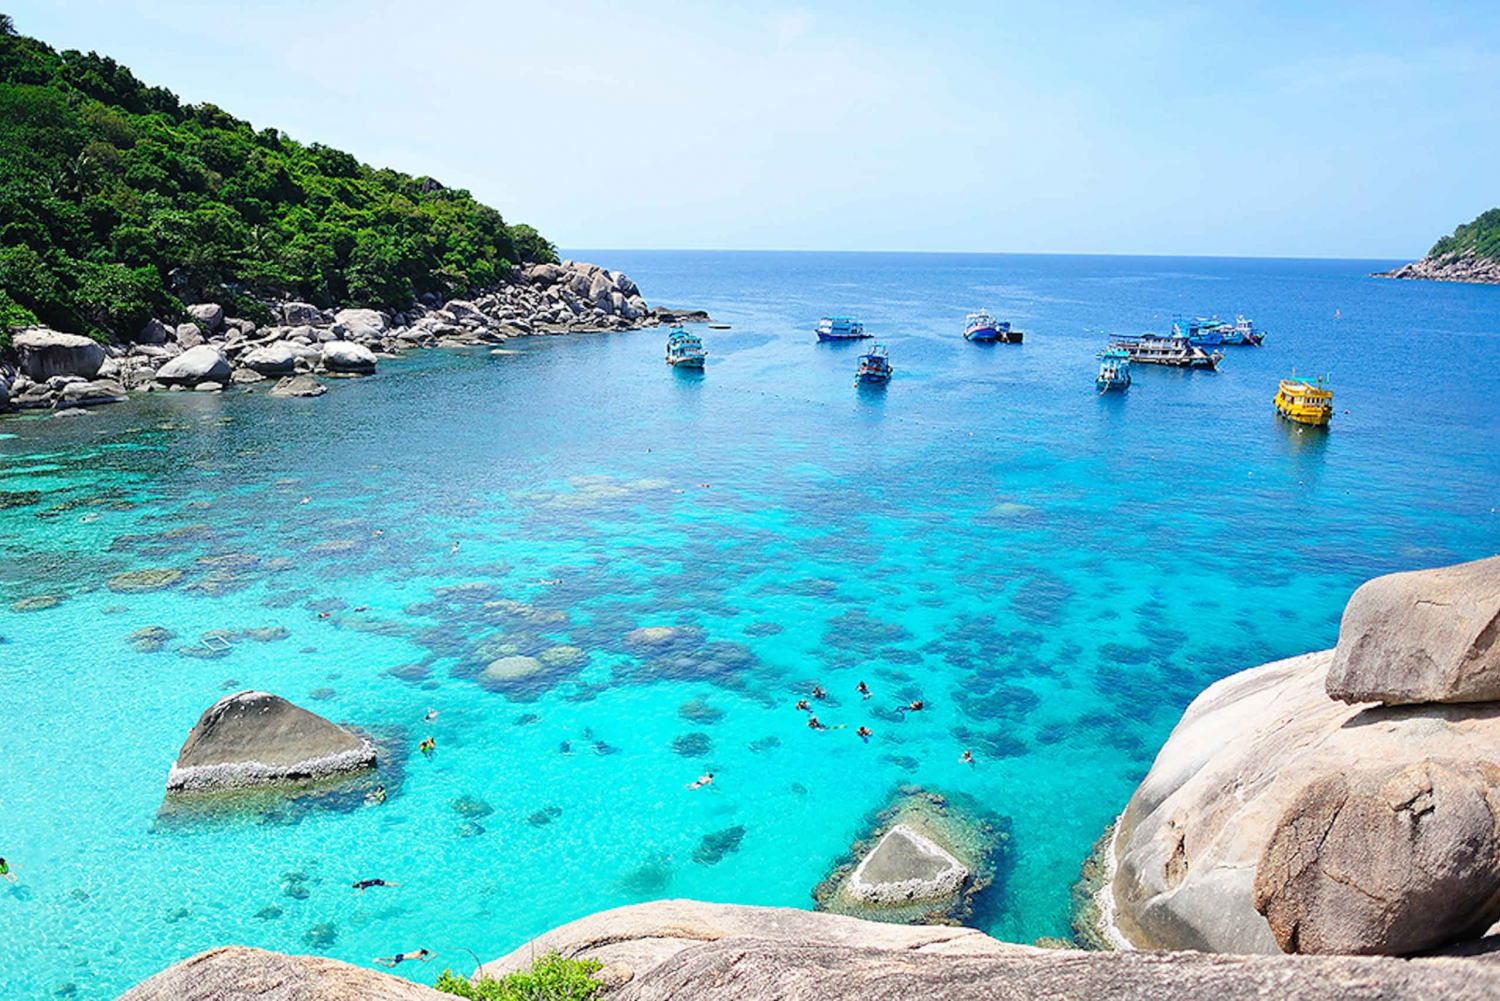 From Koh Tao & Koh Nangyuan Cruise and Snorkeling